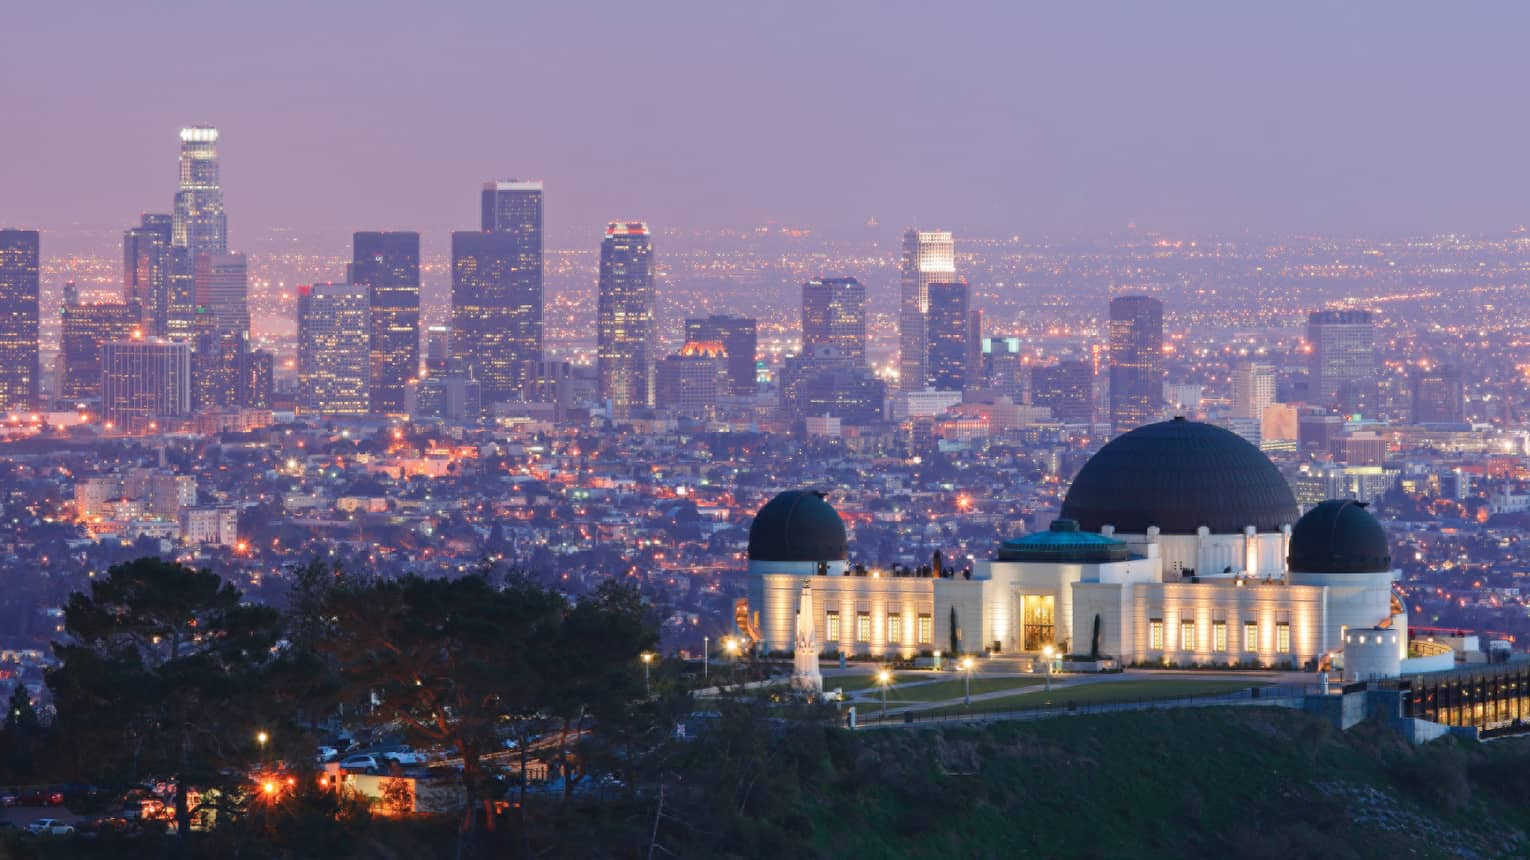 Griffith Observatory domed building, lights on hill overlooking Los Angeles at night